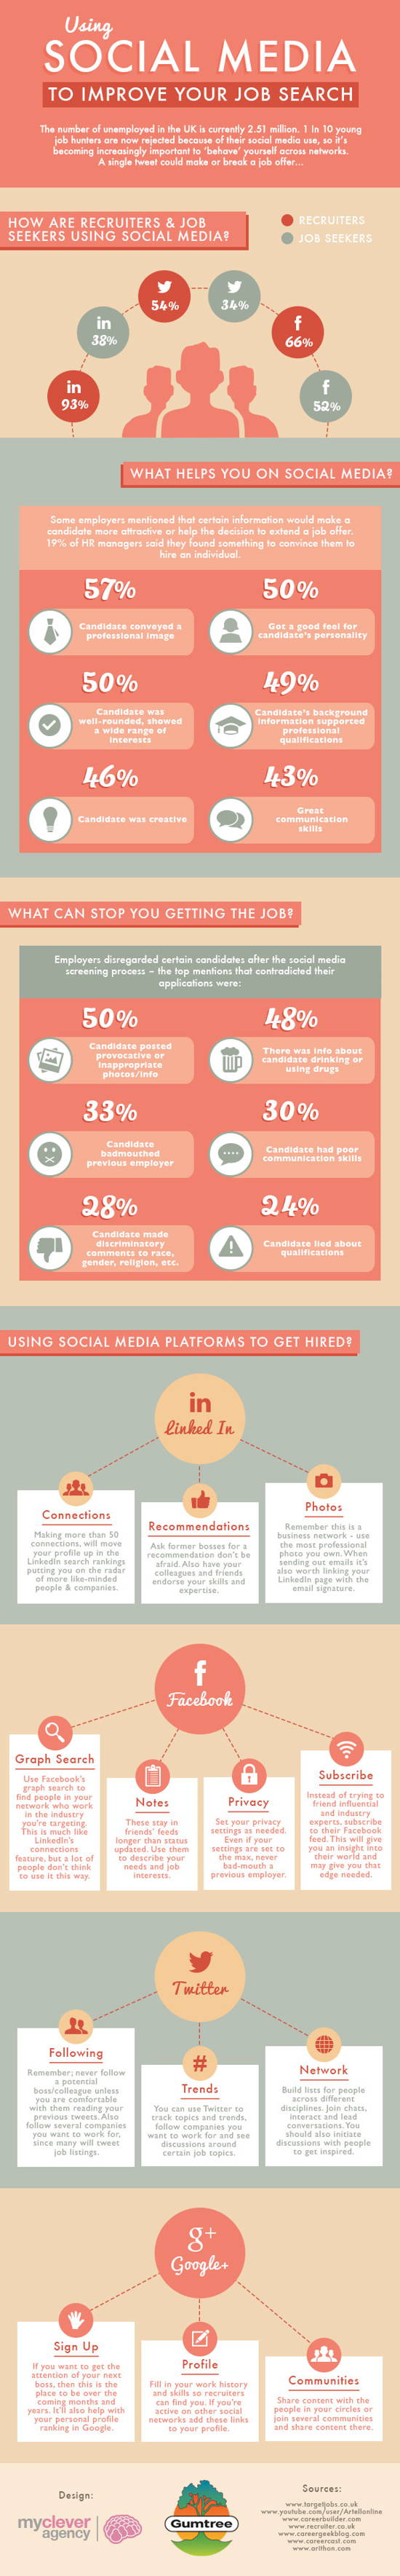 Infographic: Using Social Media to Improve Your job Search